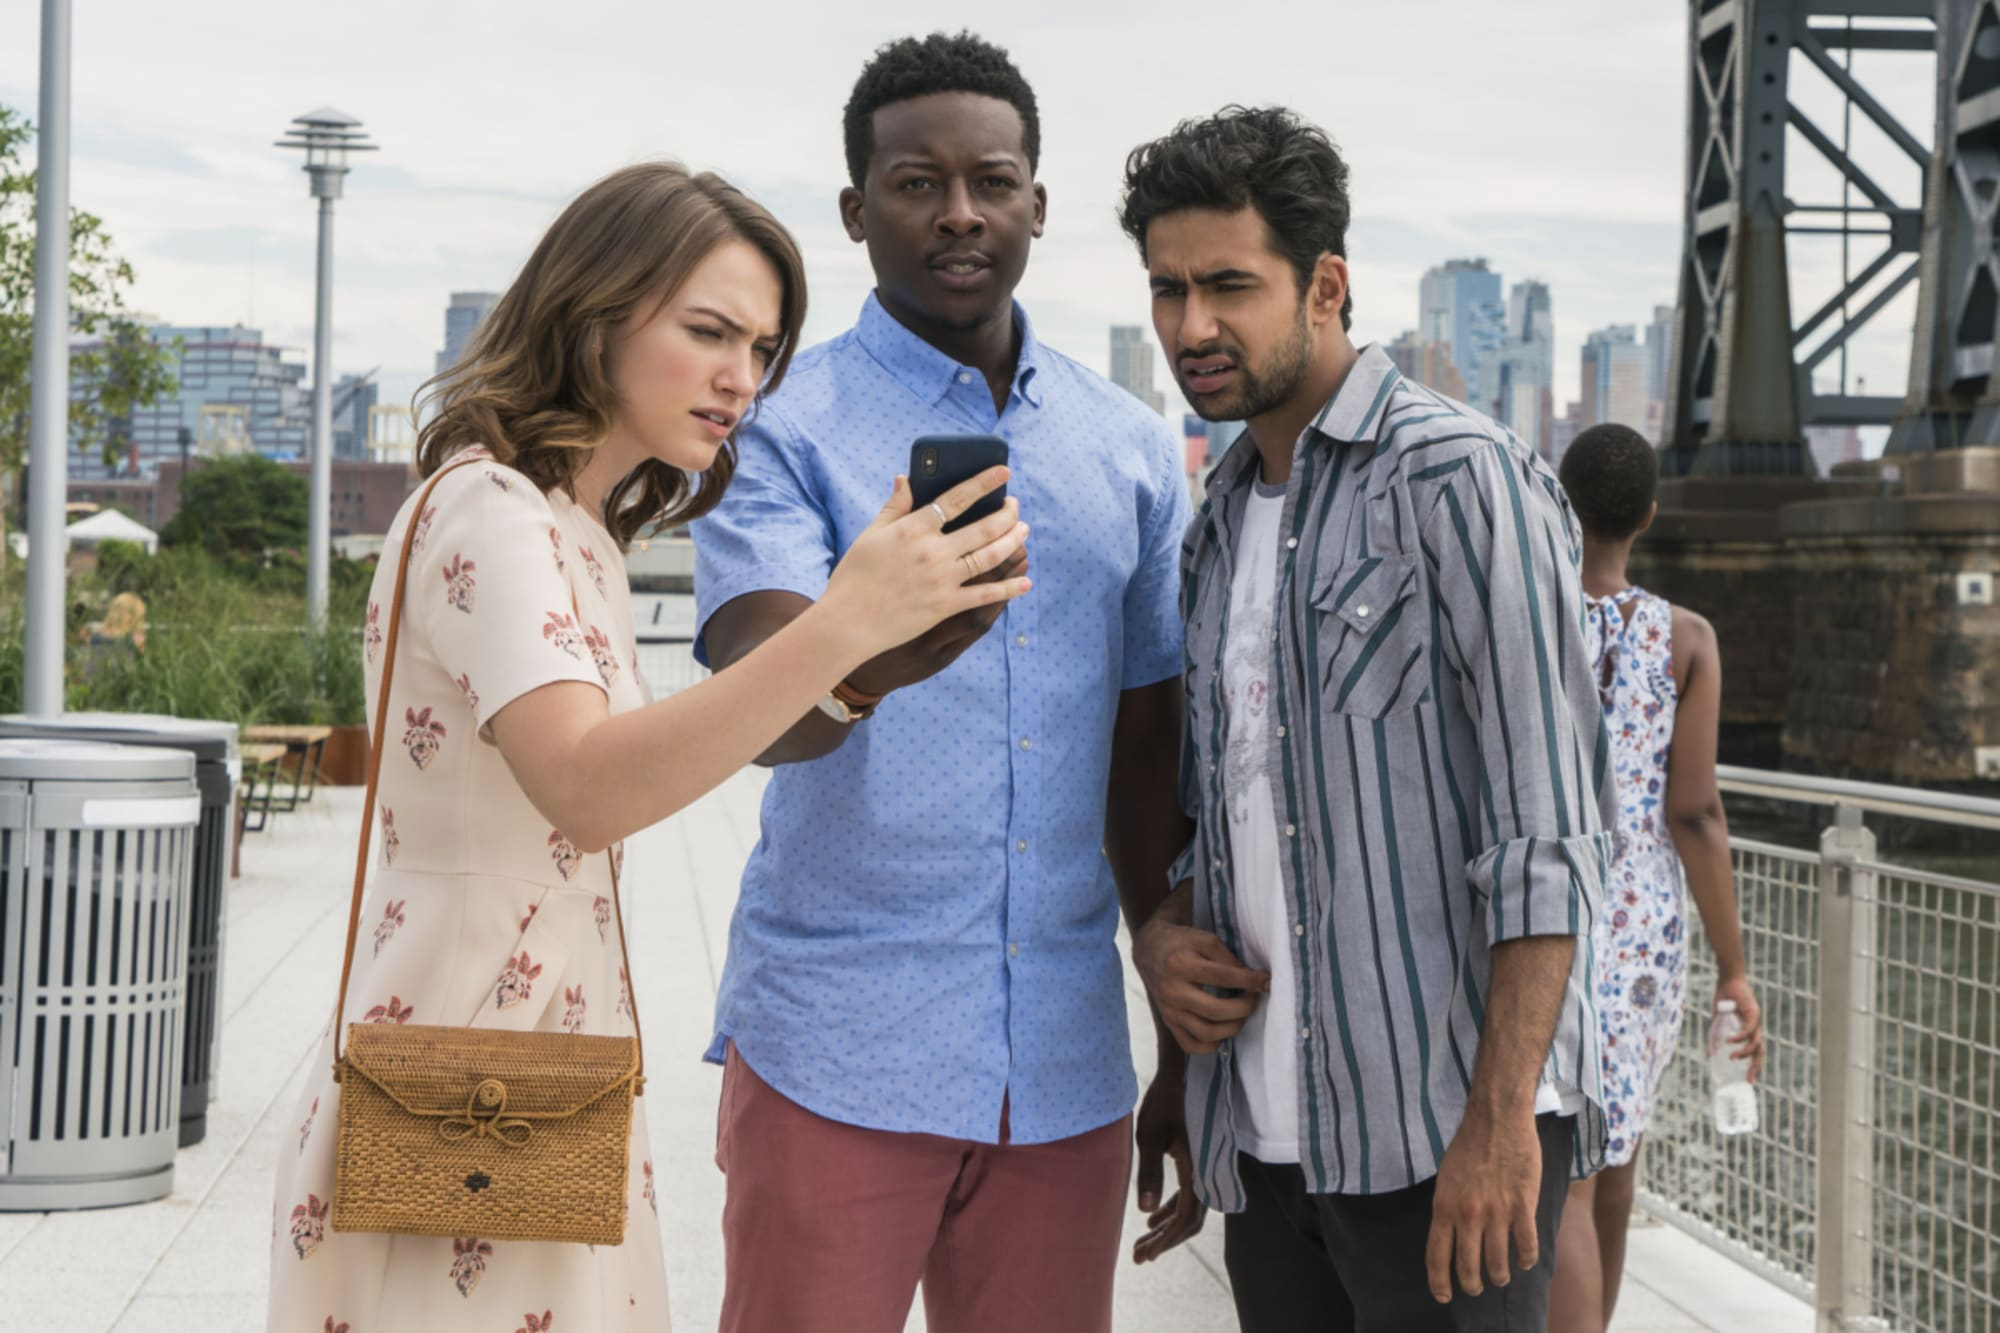 watch god friended me episode 1 free